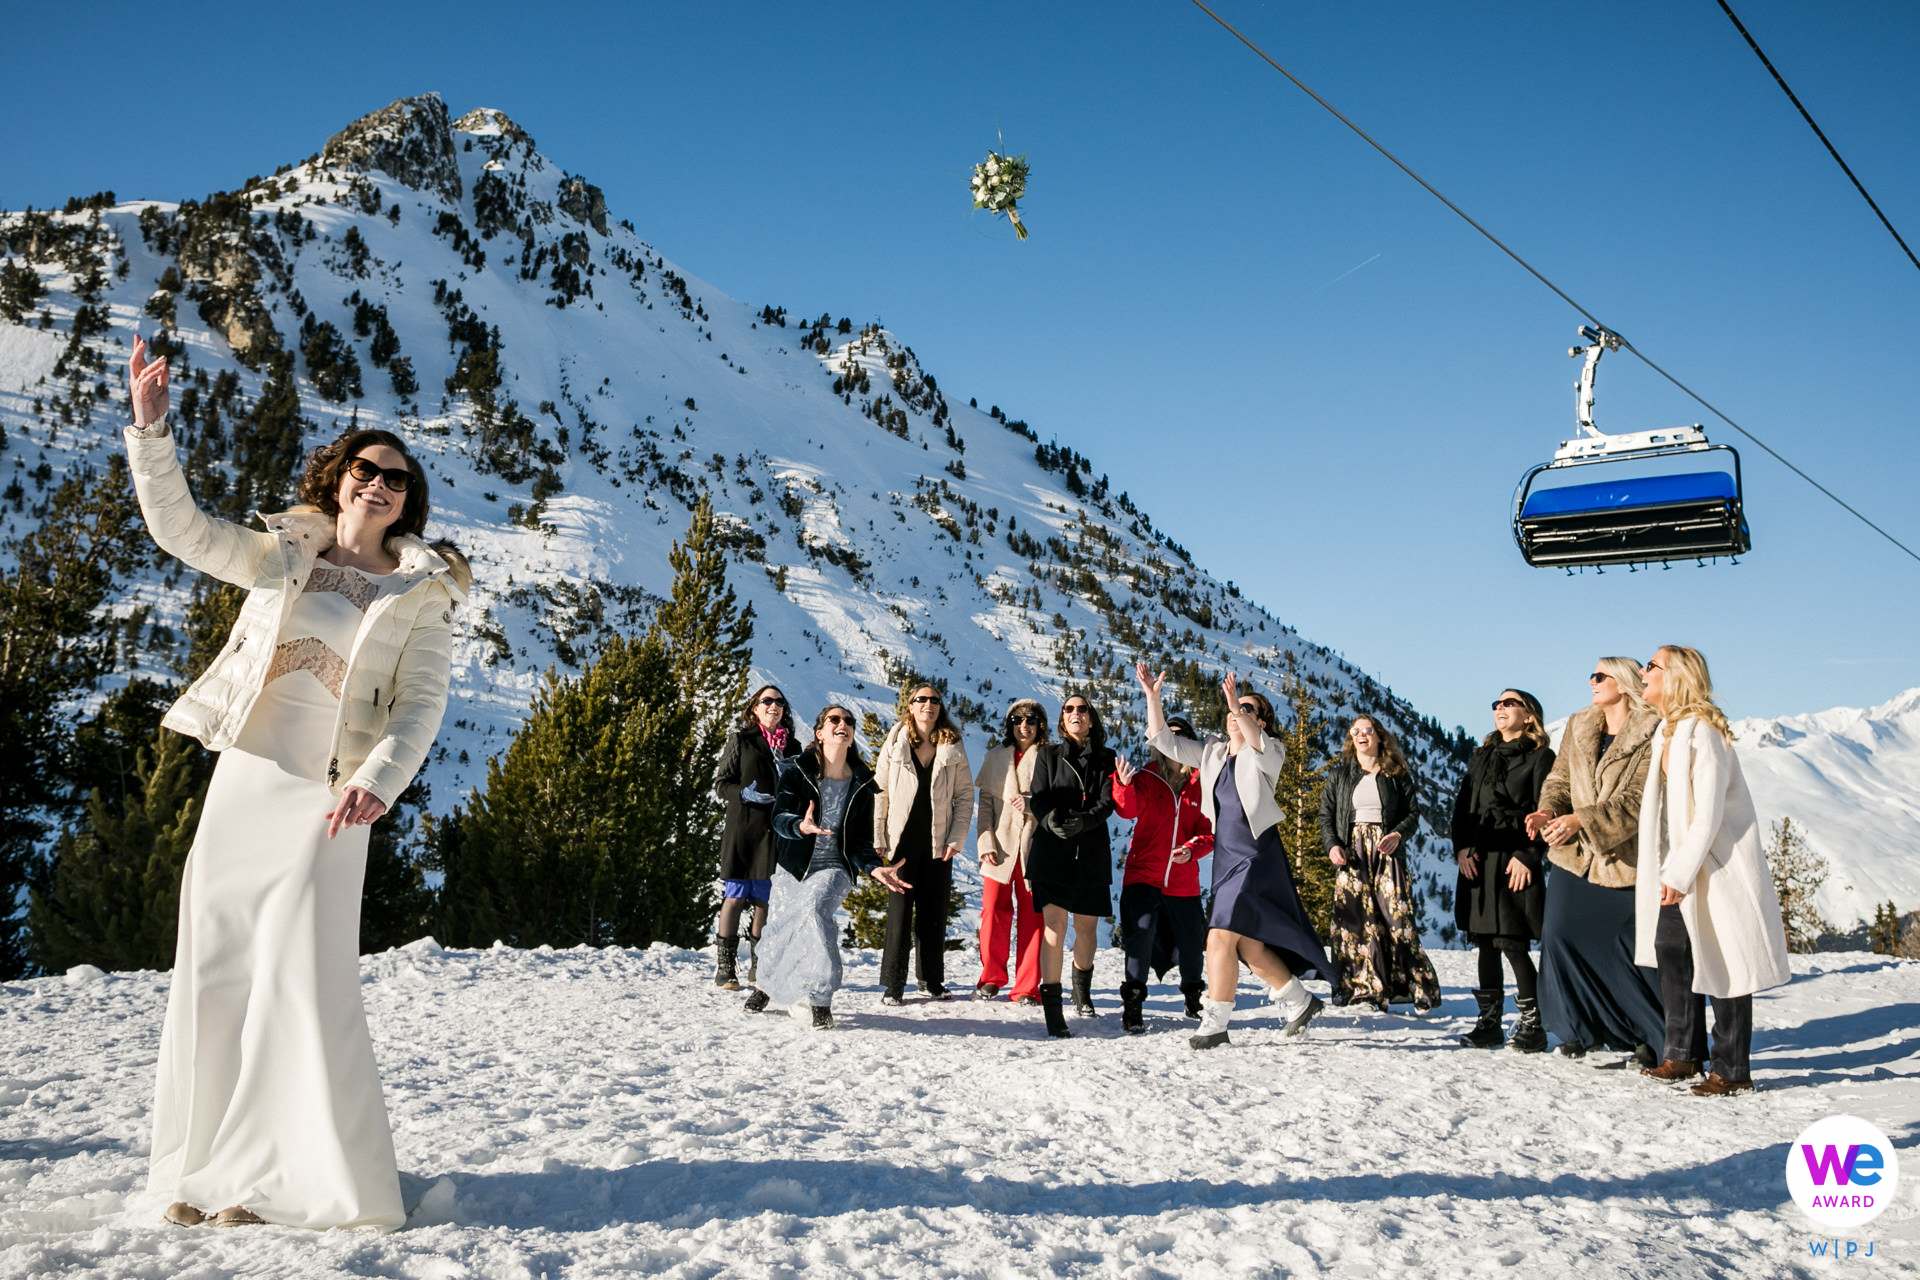 Alpine Wedding Photo - France Ski Resort Elopements | The bride tosses her bouquet towards her friends and family on the ski slopes